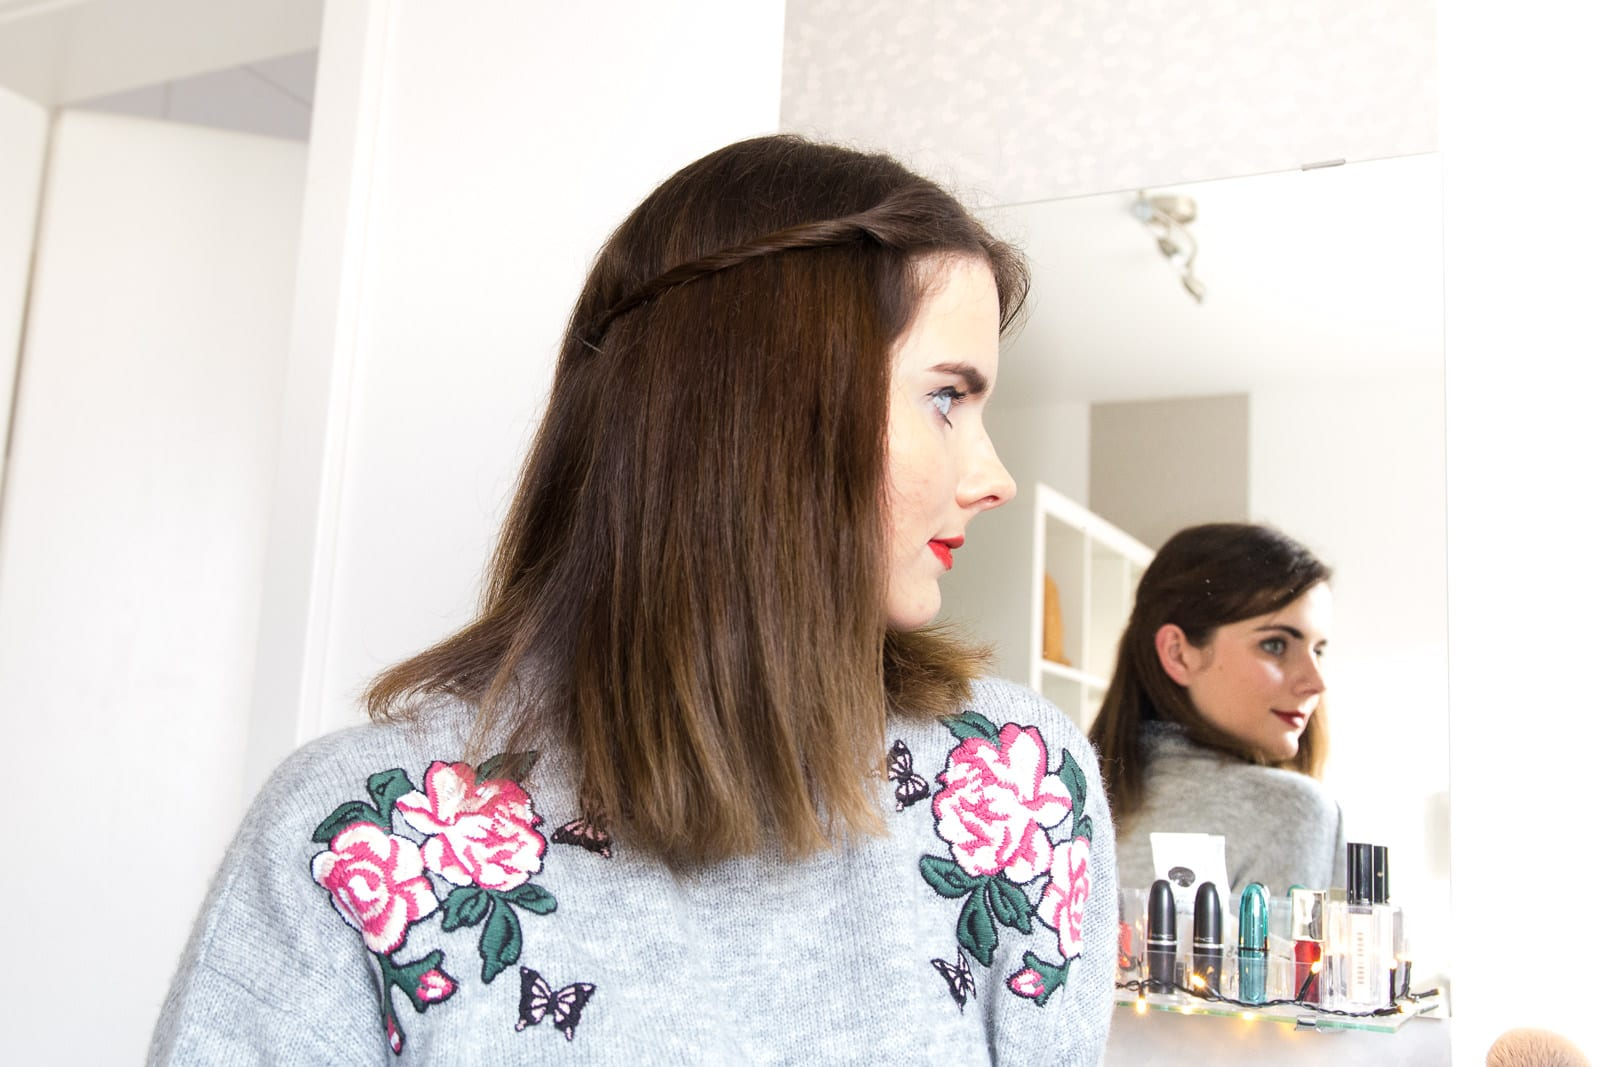 weihnachts-look-2016-frisur-make-up-styling-mit-braun-get-ready-with-me-blog-des-belles-choses-1